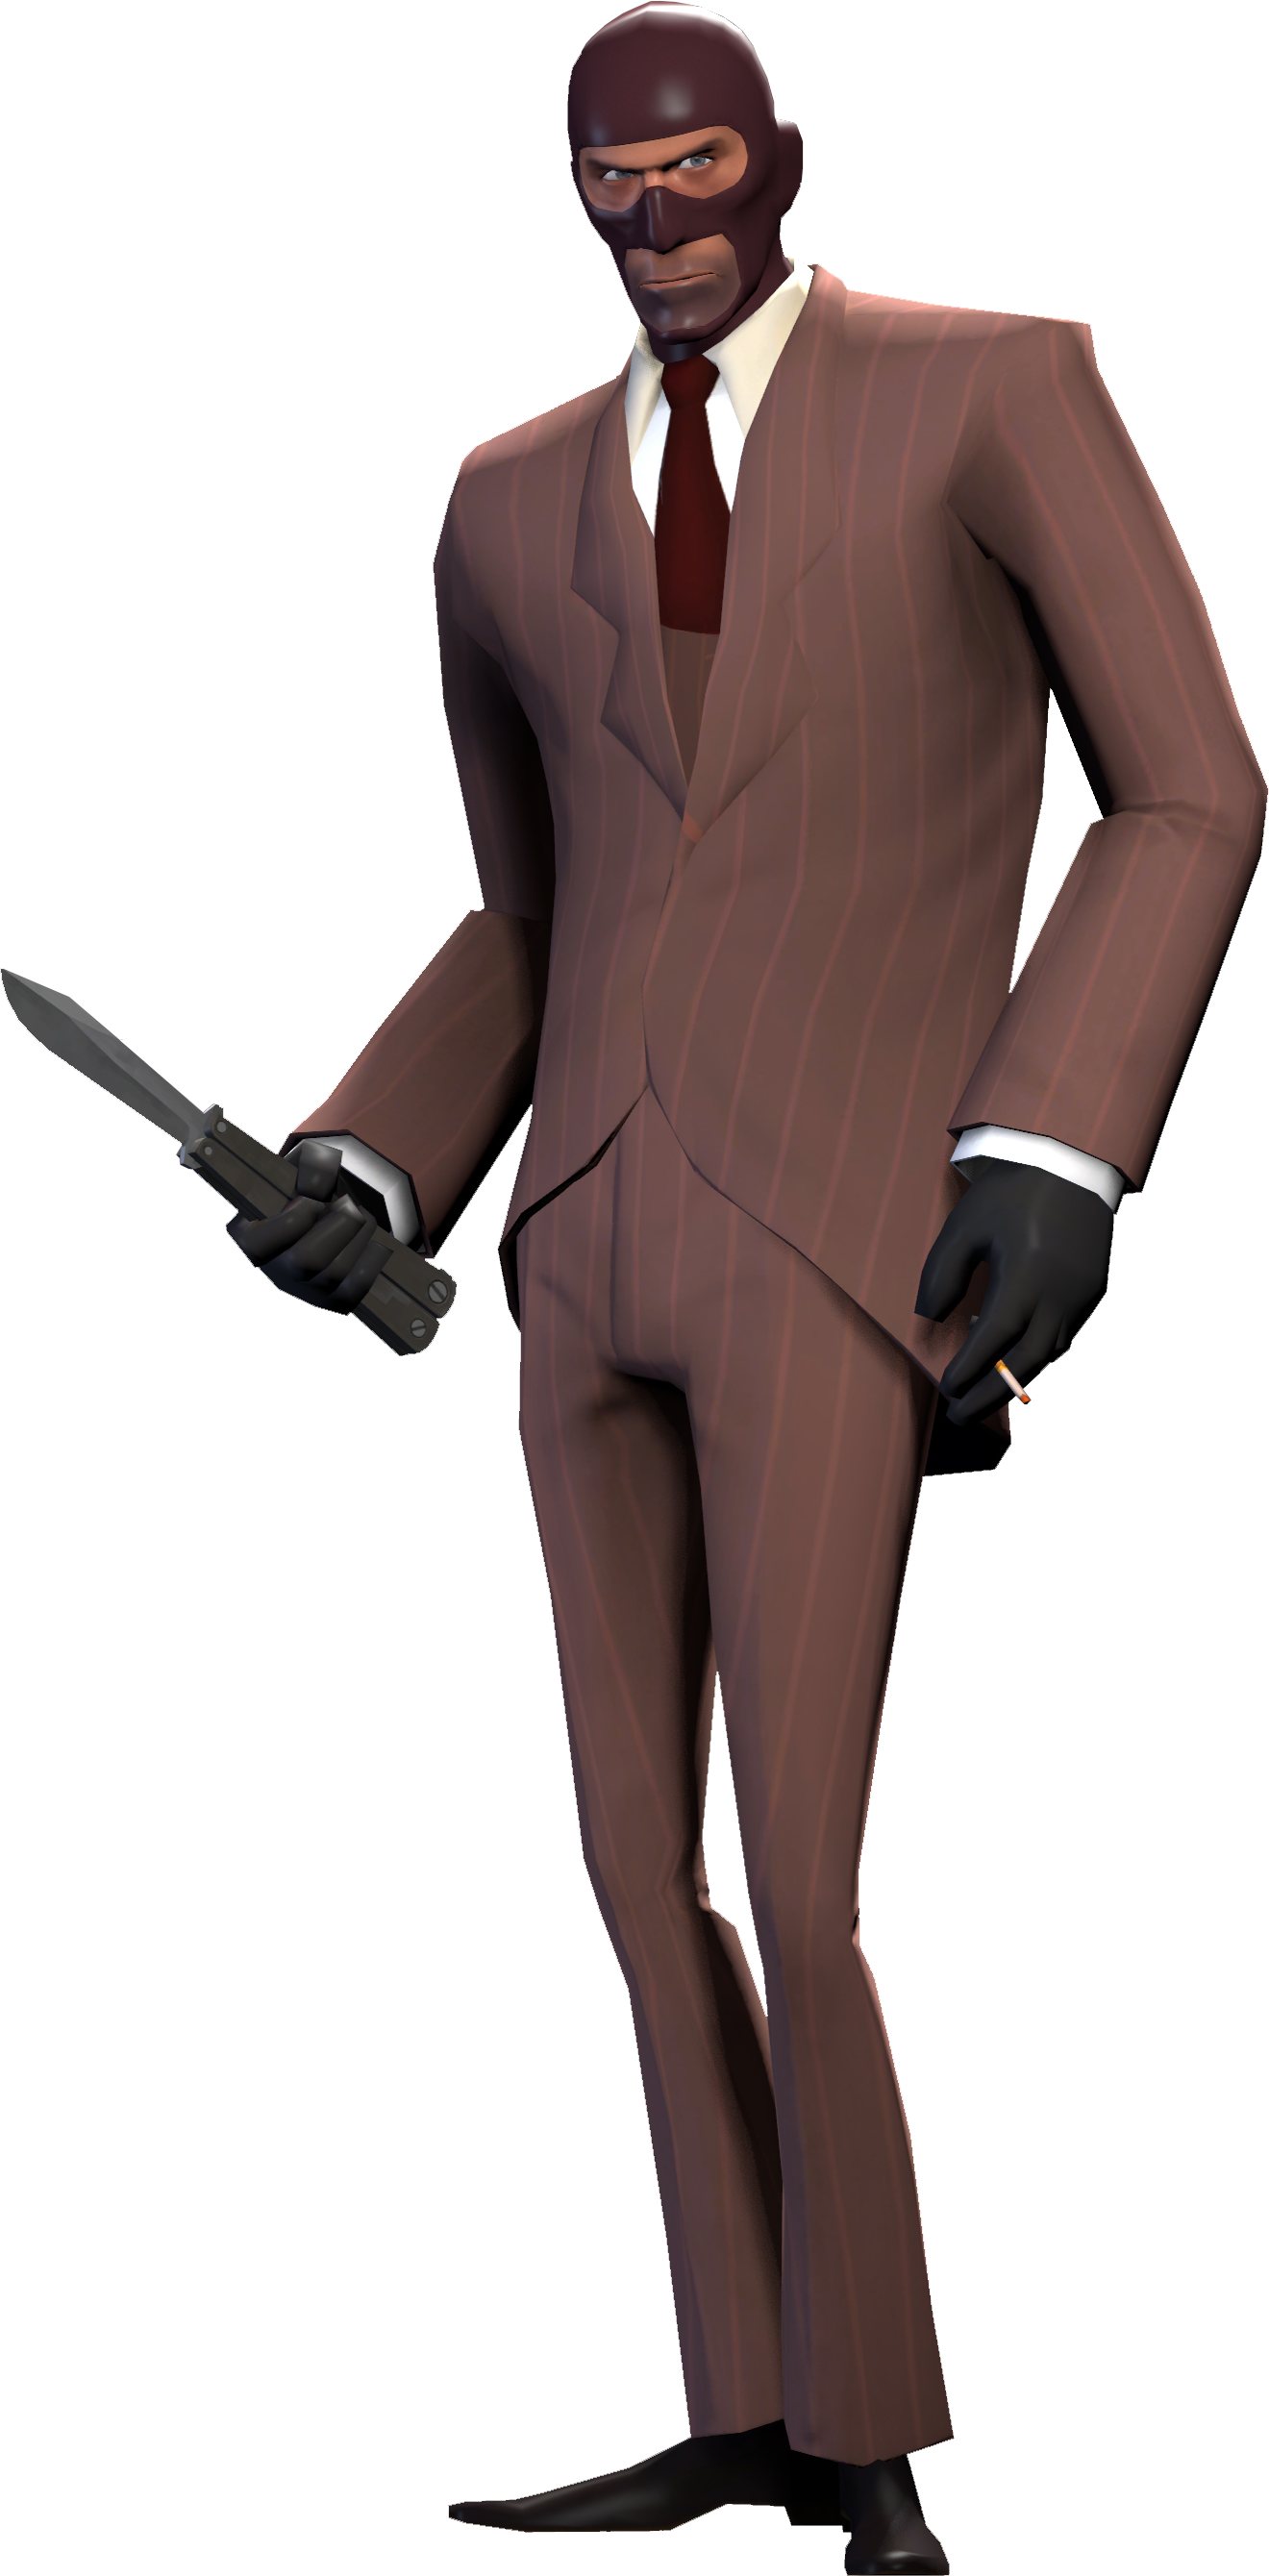 team fortress 3 meet the spy download